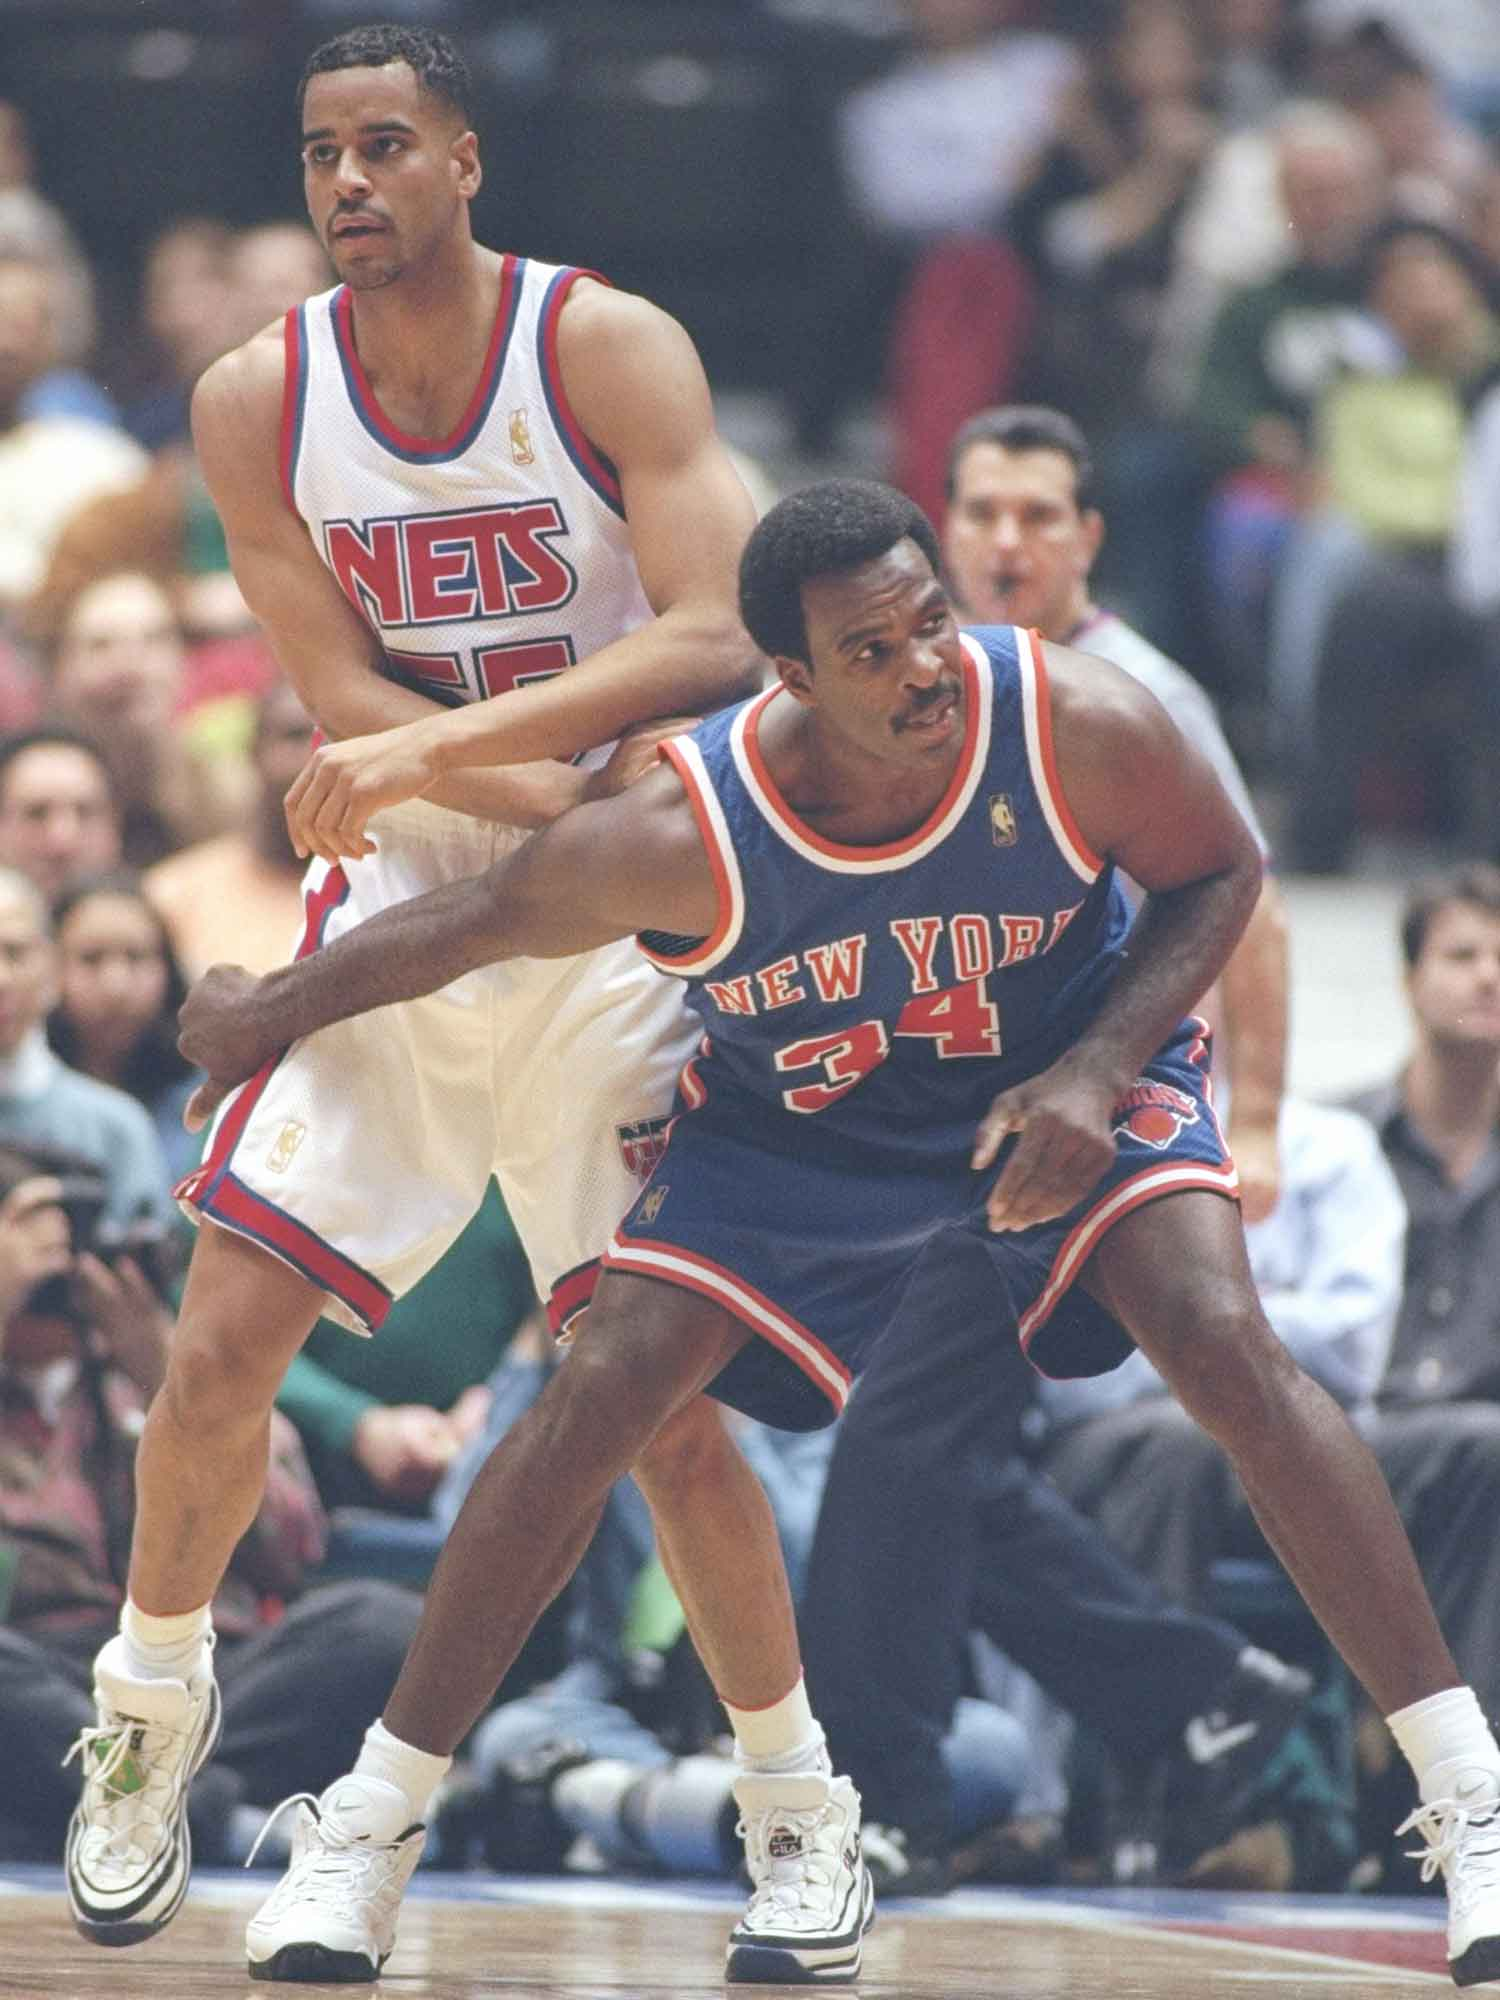 Jayson Williams and Charles Oakley